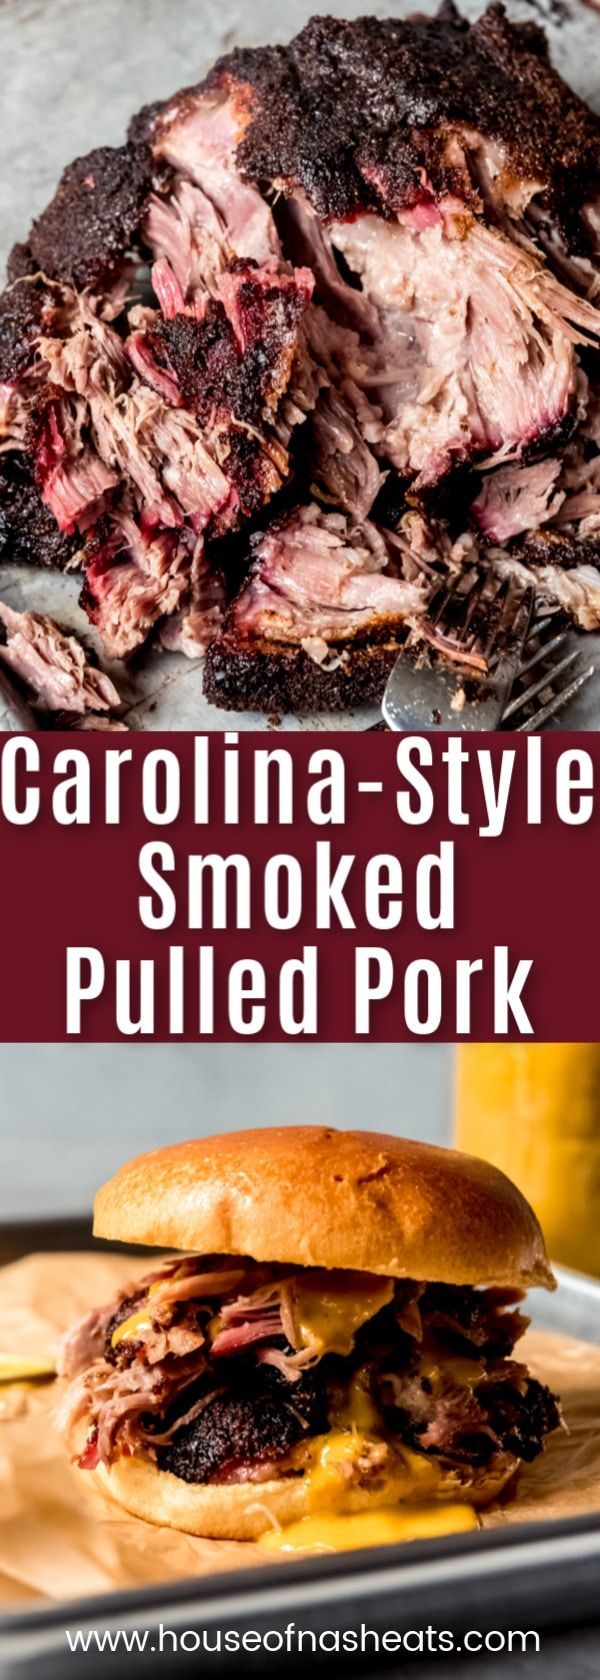 Photo of Smoked Pulled Pork